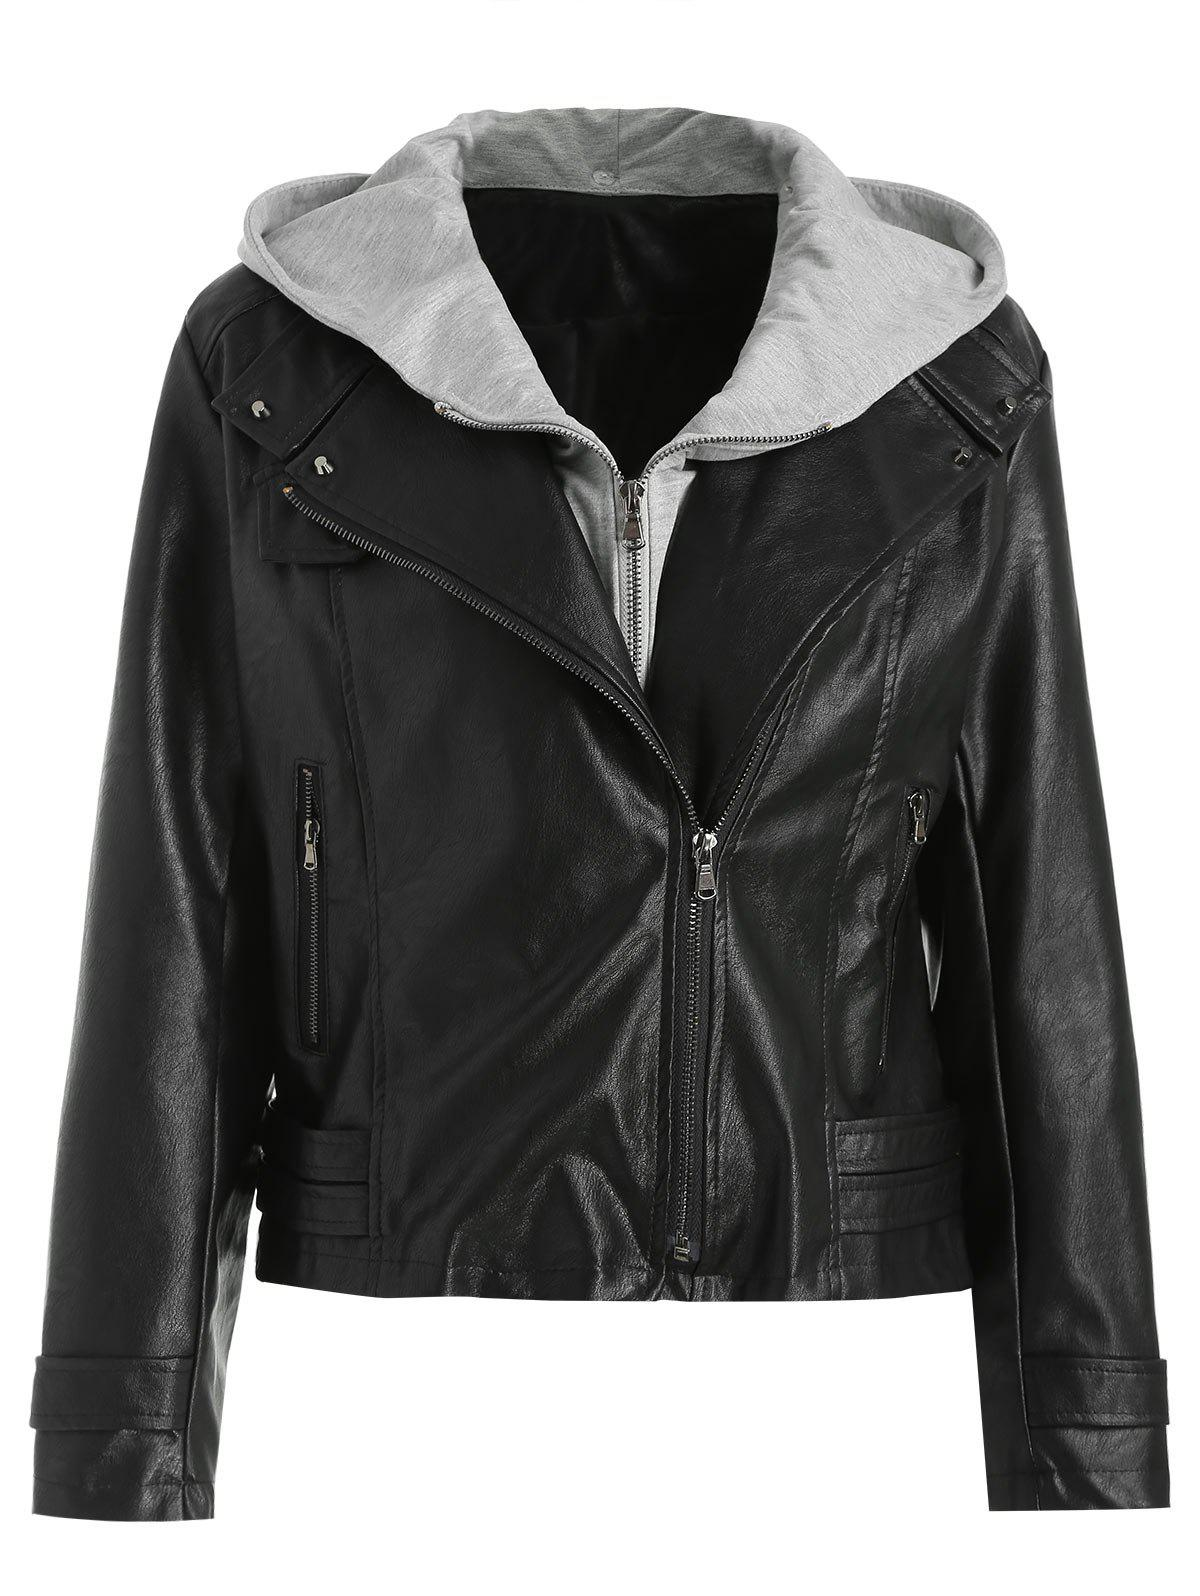 Buy Removable Hooded PU Leather Jacket